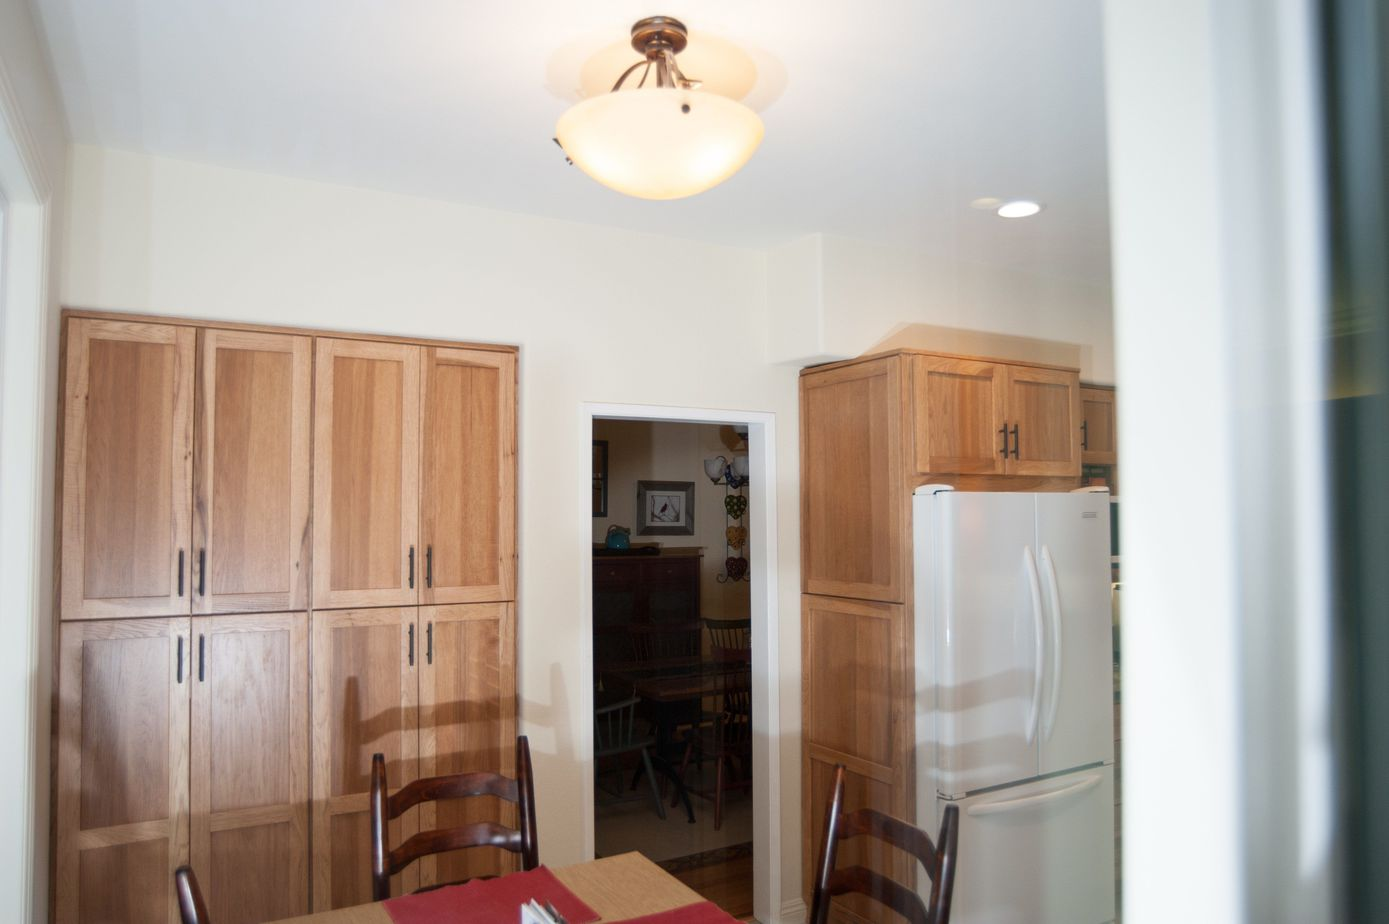 kitchen remodel with pantry area in matching wood as the kitchen cabinets